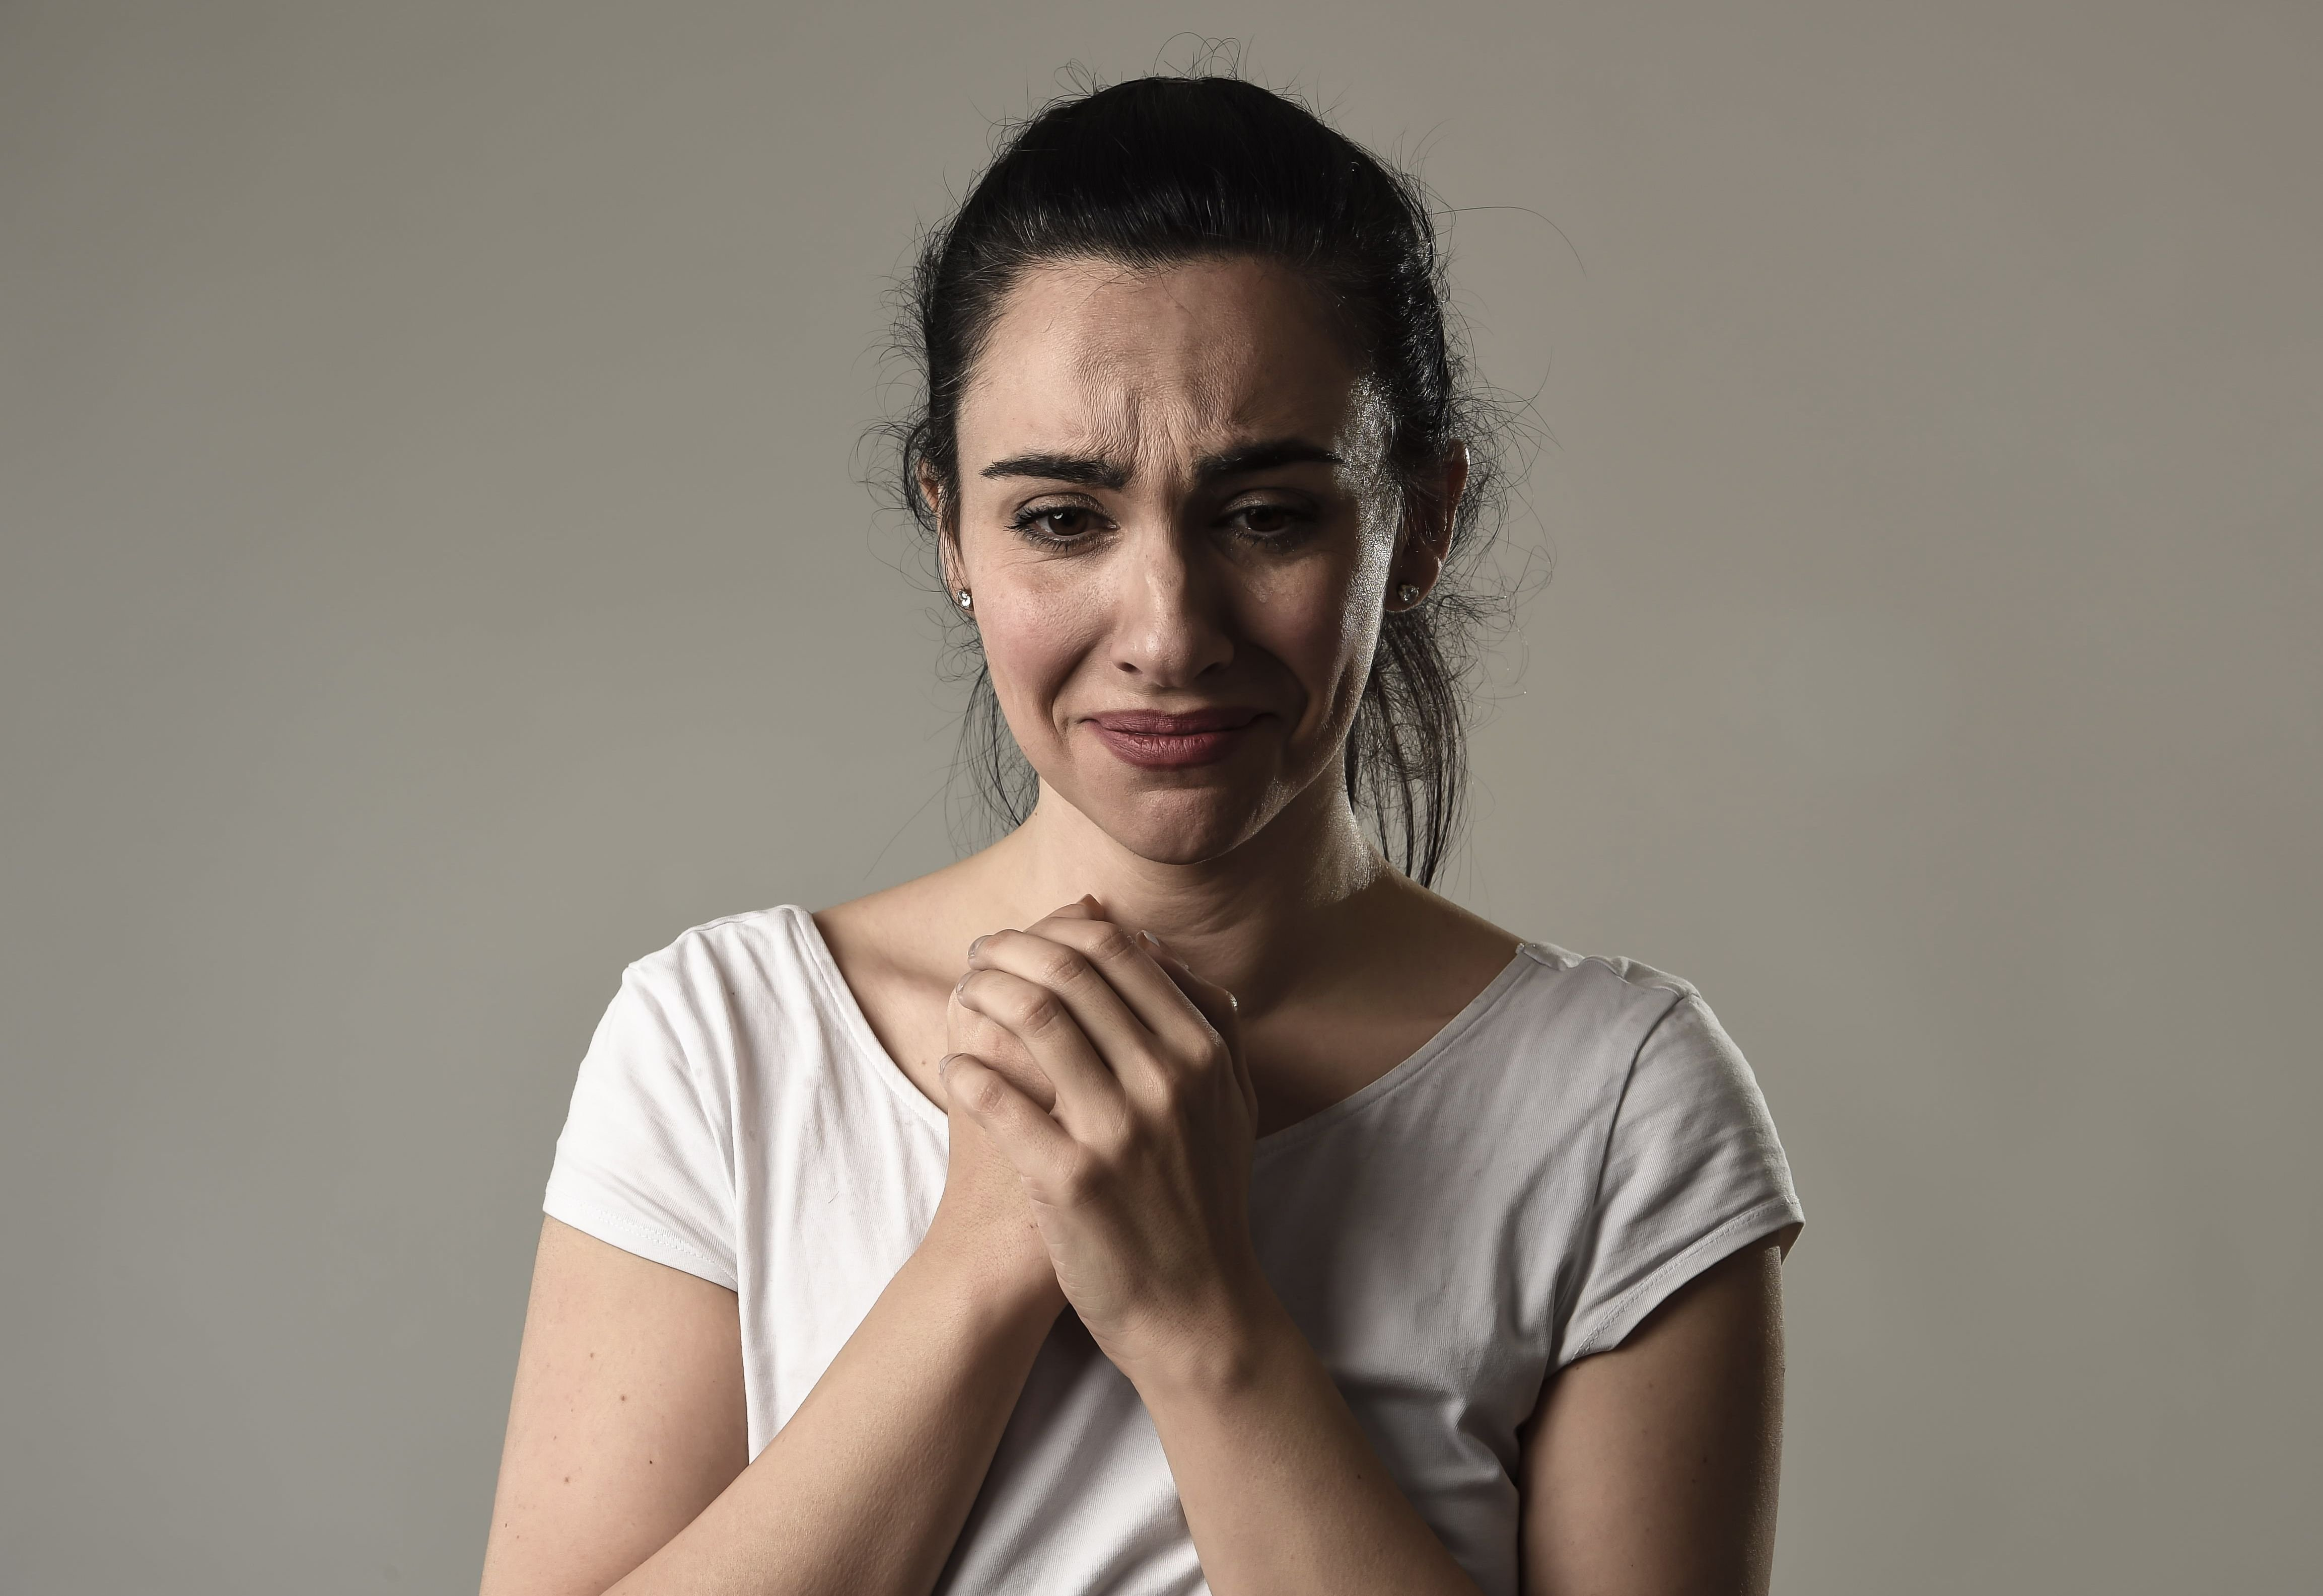 A woman crying while her hands are clasped together. | Source: Shutterstock